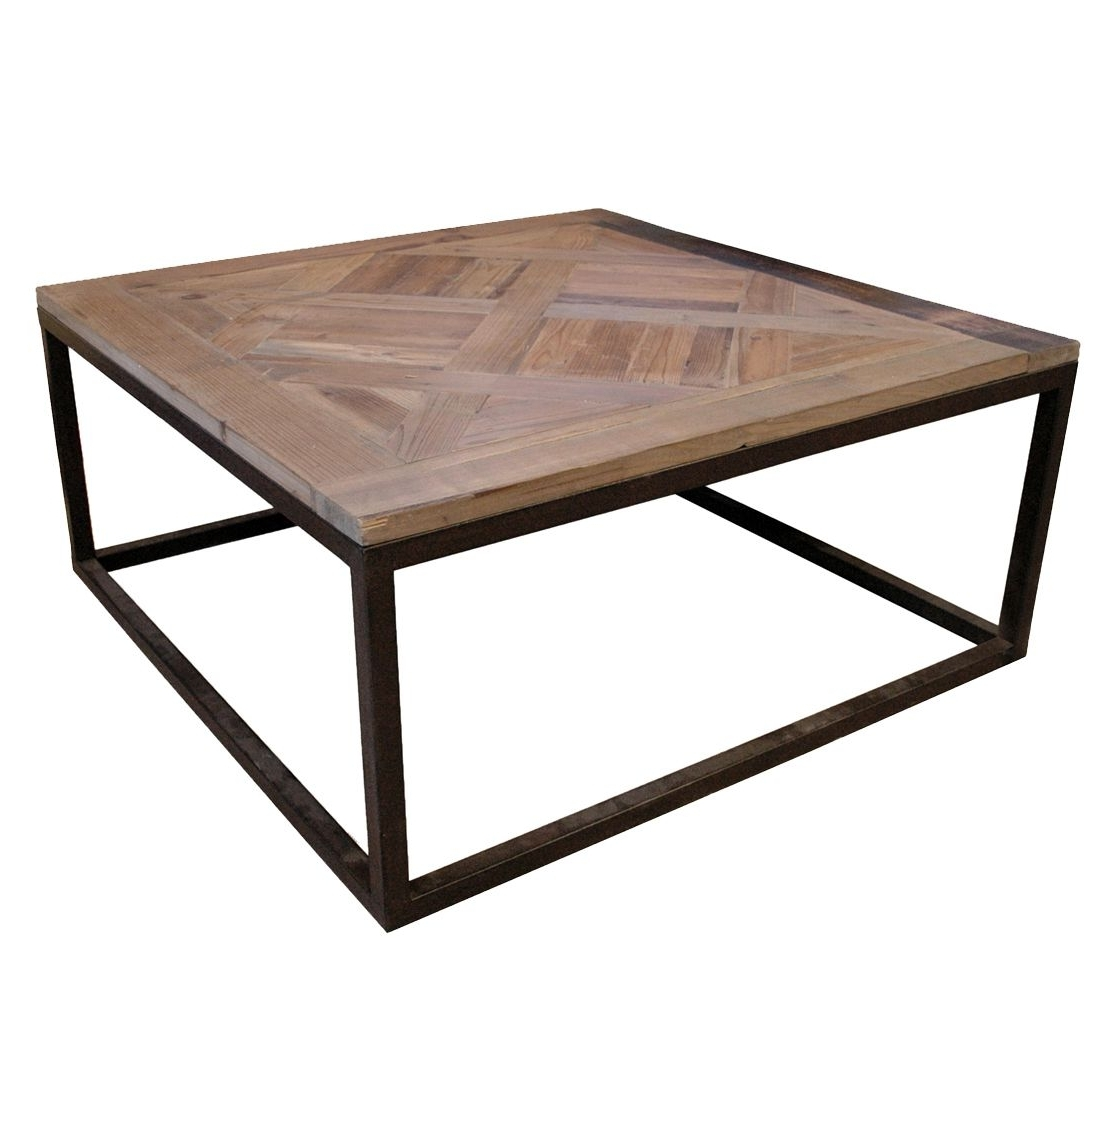 Gramercy Modern Rustic Reclaimed Parquet Wood Iron Coffee Table Regarding Most Current Reclaimed Elm Iron Coffee Tables (Gallery 19 of 20)